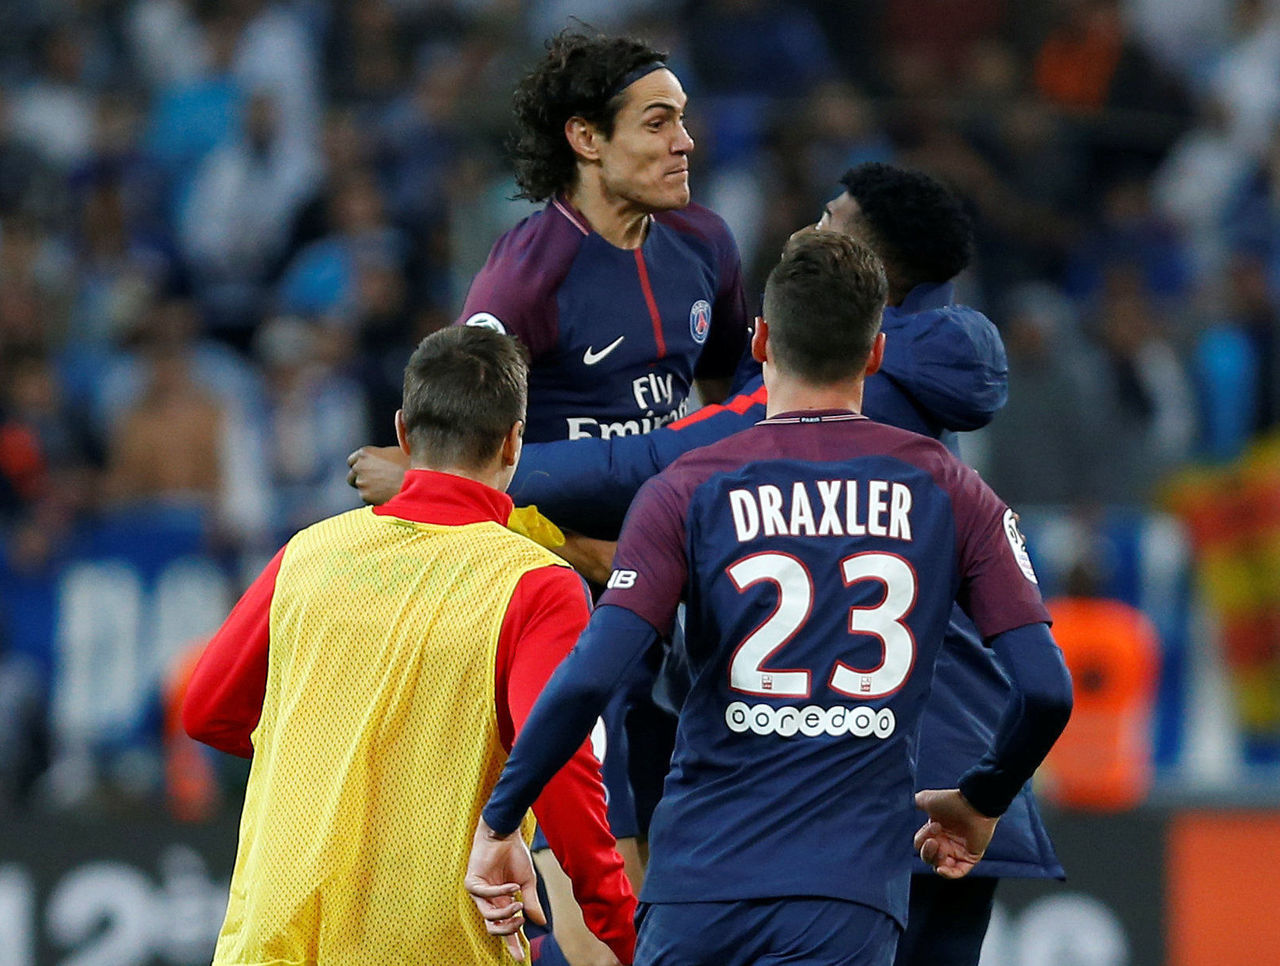 Cropped 2017 10 22t205523z 17928358 rc1ee9a3f8a0 rtrmadp 3 soccer france olm psg